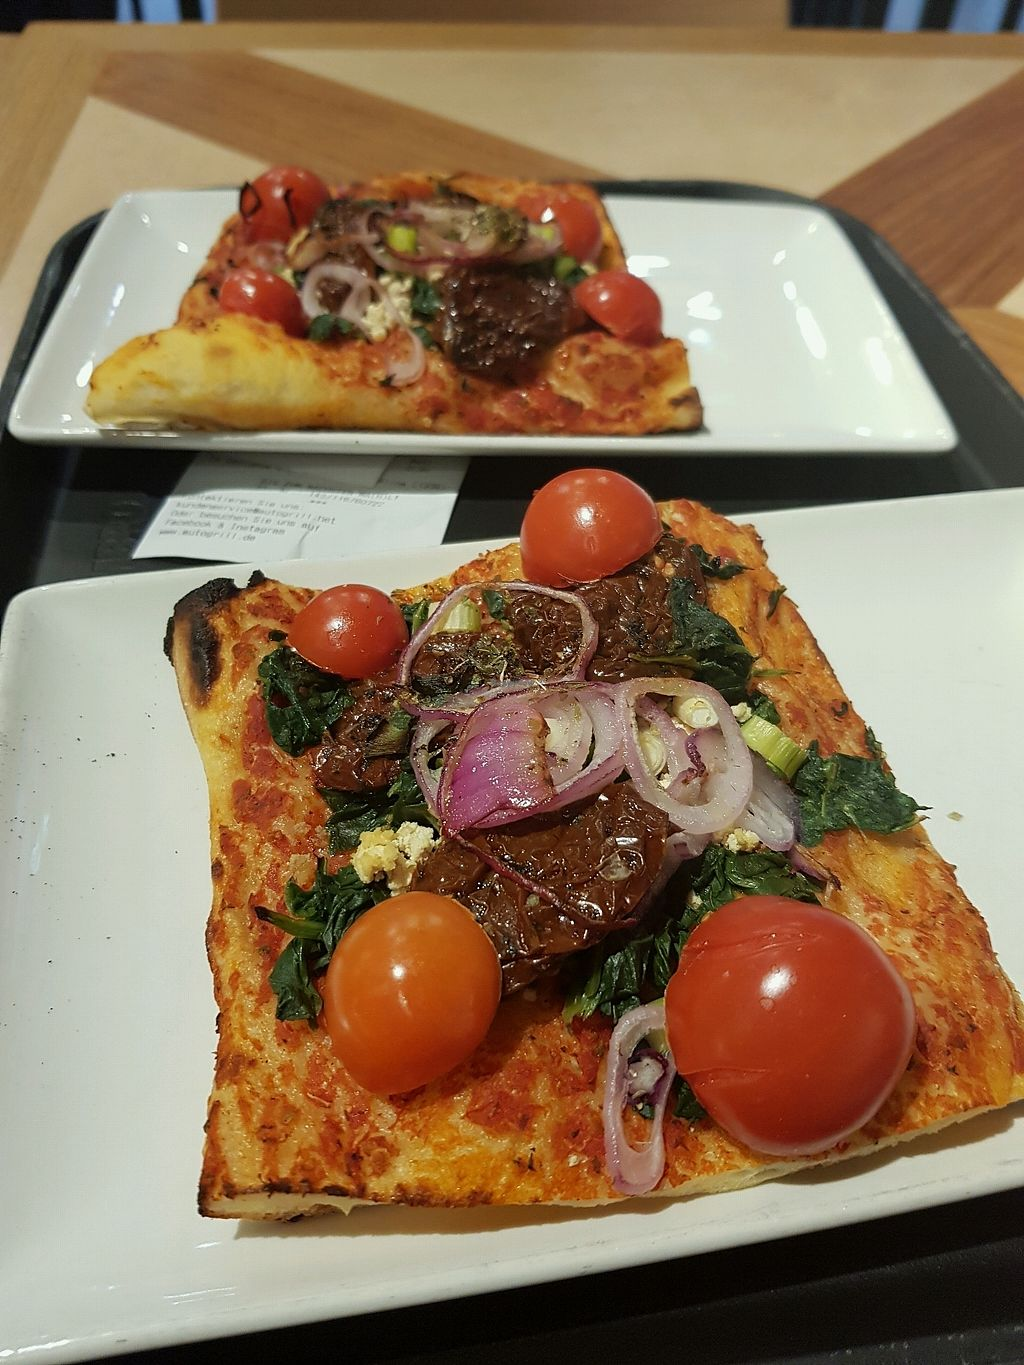 """Photo of Bistrot - Airport  by <a href=""""/members/profile/MartynaKumarka"""">MartynaKumarka</a> <br/>vegan pizza with tofu <br/> March 9, 2018  - <a href='/contact/abuse/image/114067/368567'>Report</a>"""